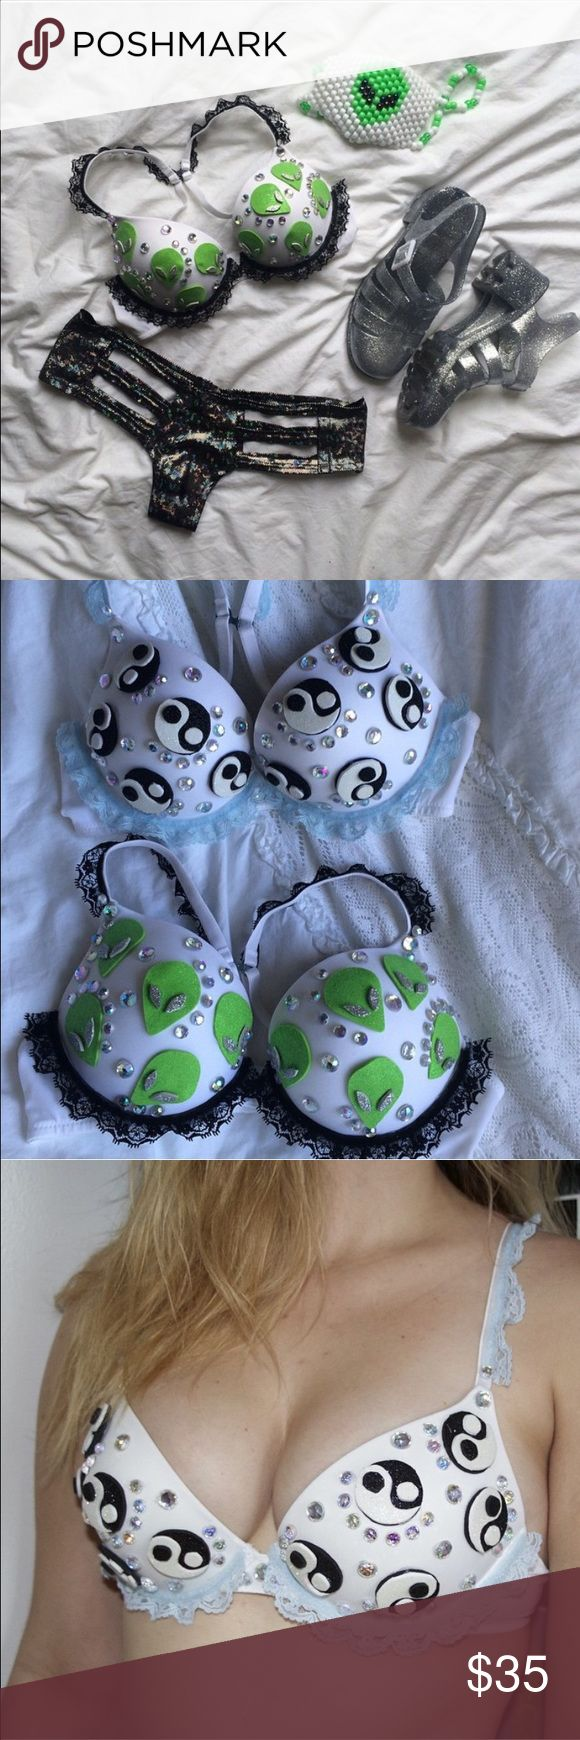 Alien + Yin Yang Glitter Pop Bra Duo Embellished bras perfect for any event, festival, party, or costume! Push up with racerback convertible straps. Both size 34B/32C Intimates & Sleepwear Bras